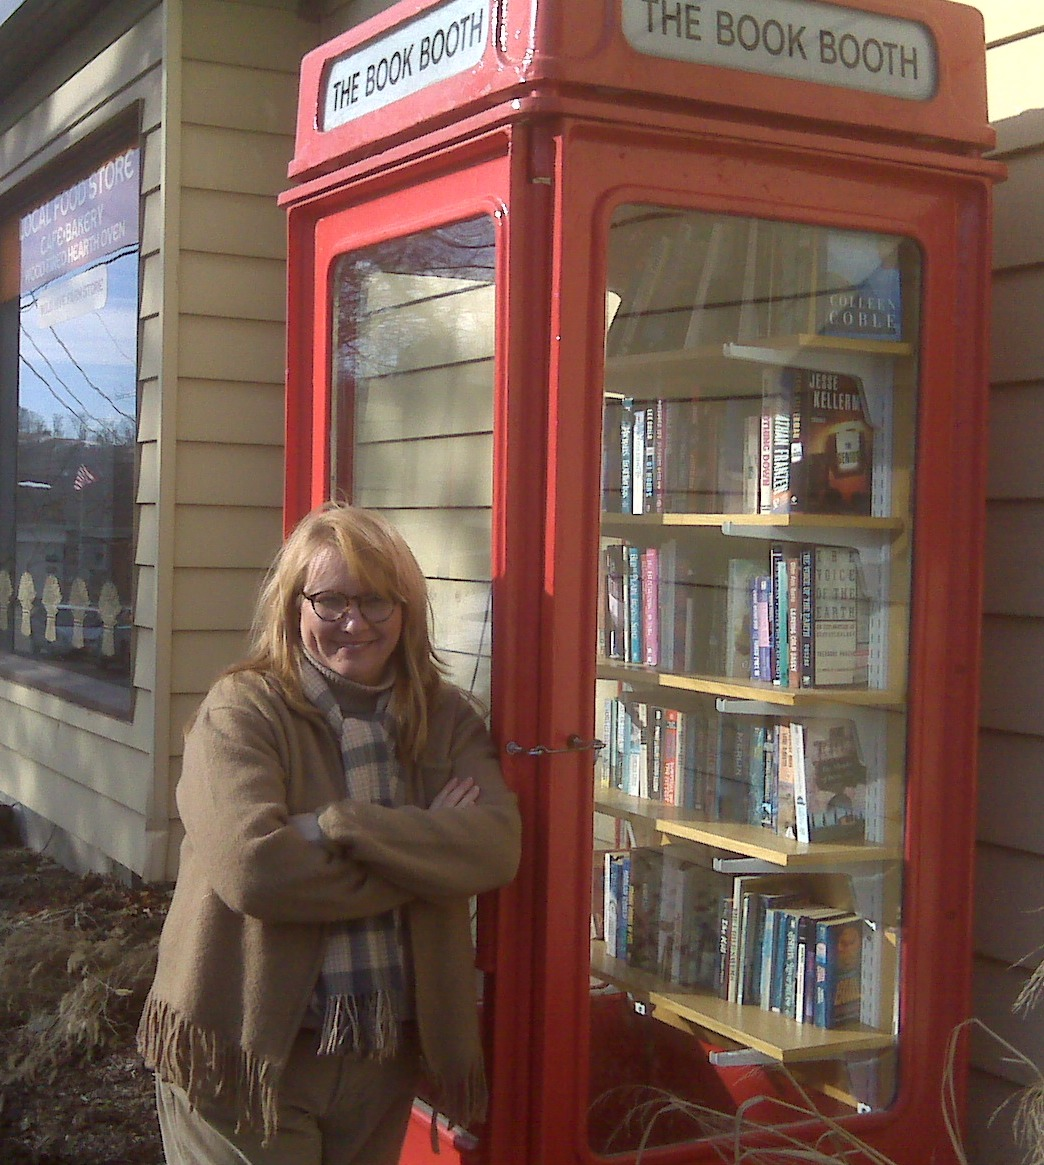 The Book Booth: America's Littlest Library